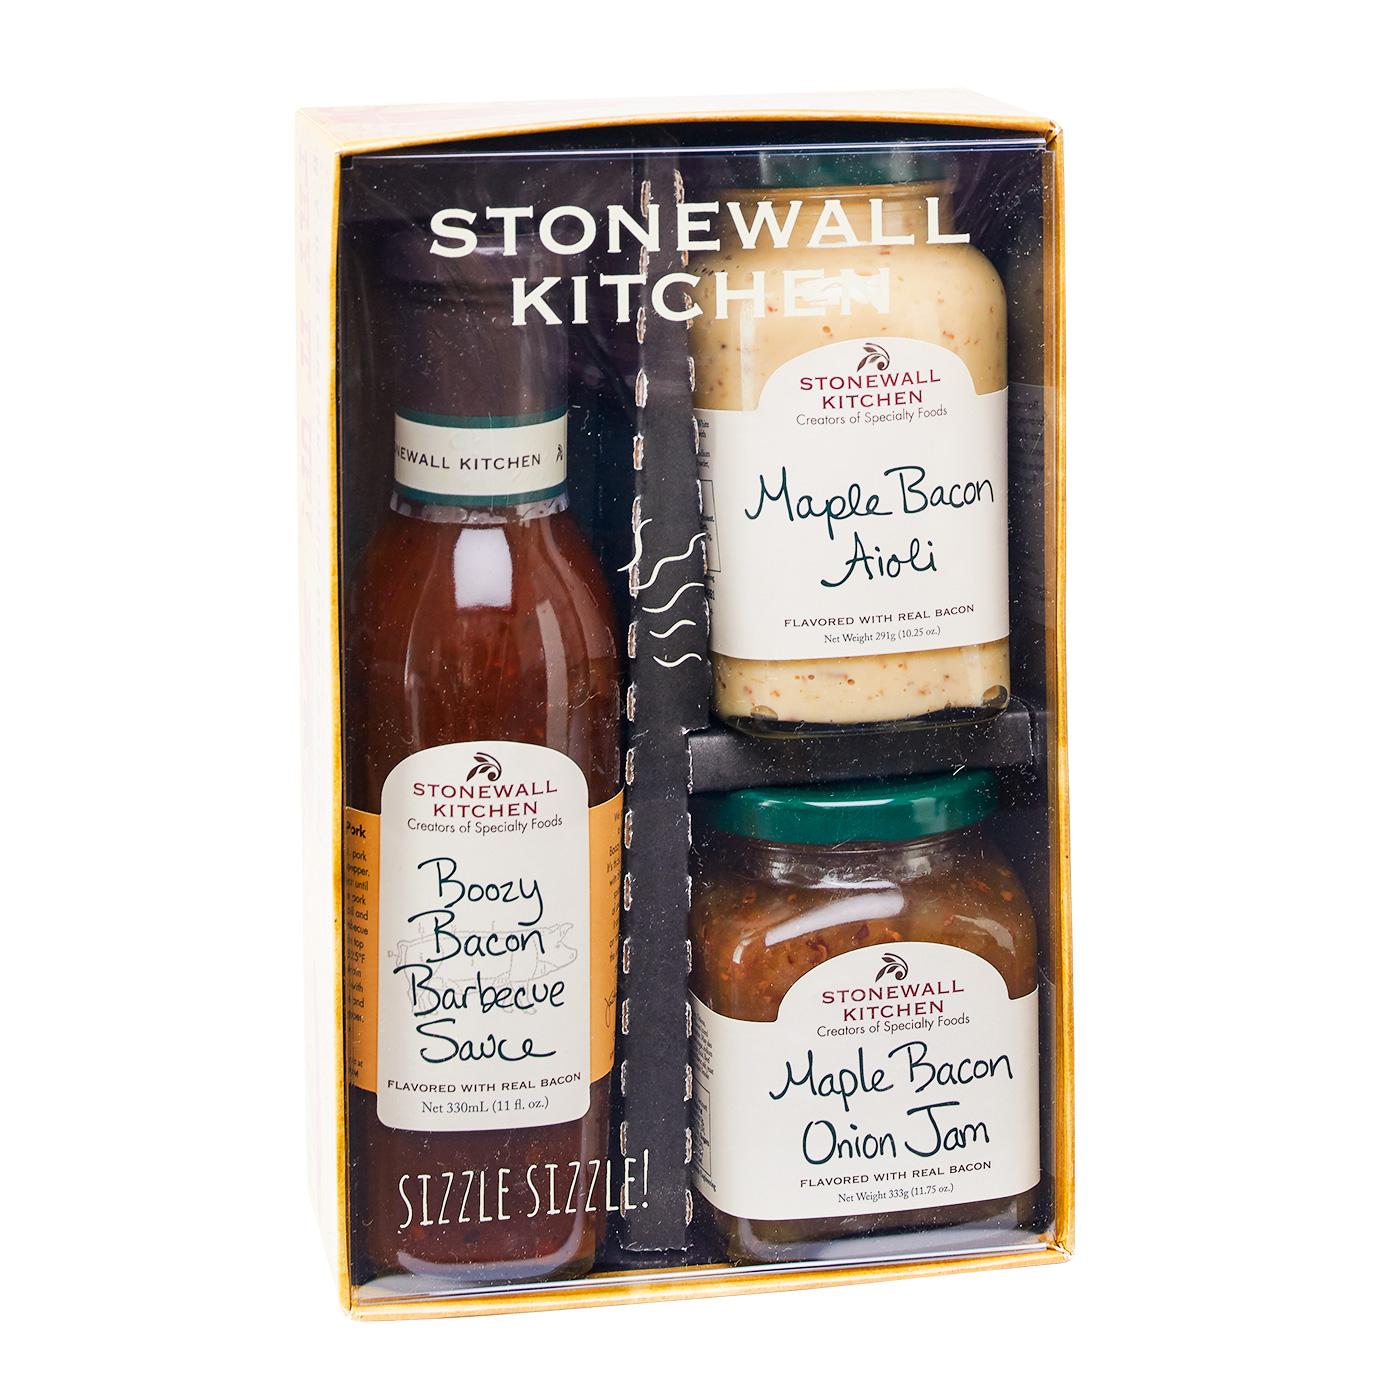 Stonewall Kitchen Bacon Gift Set in a box